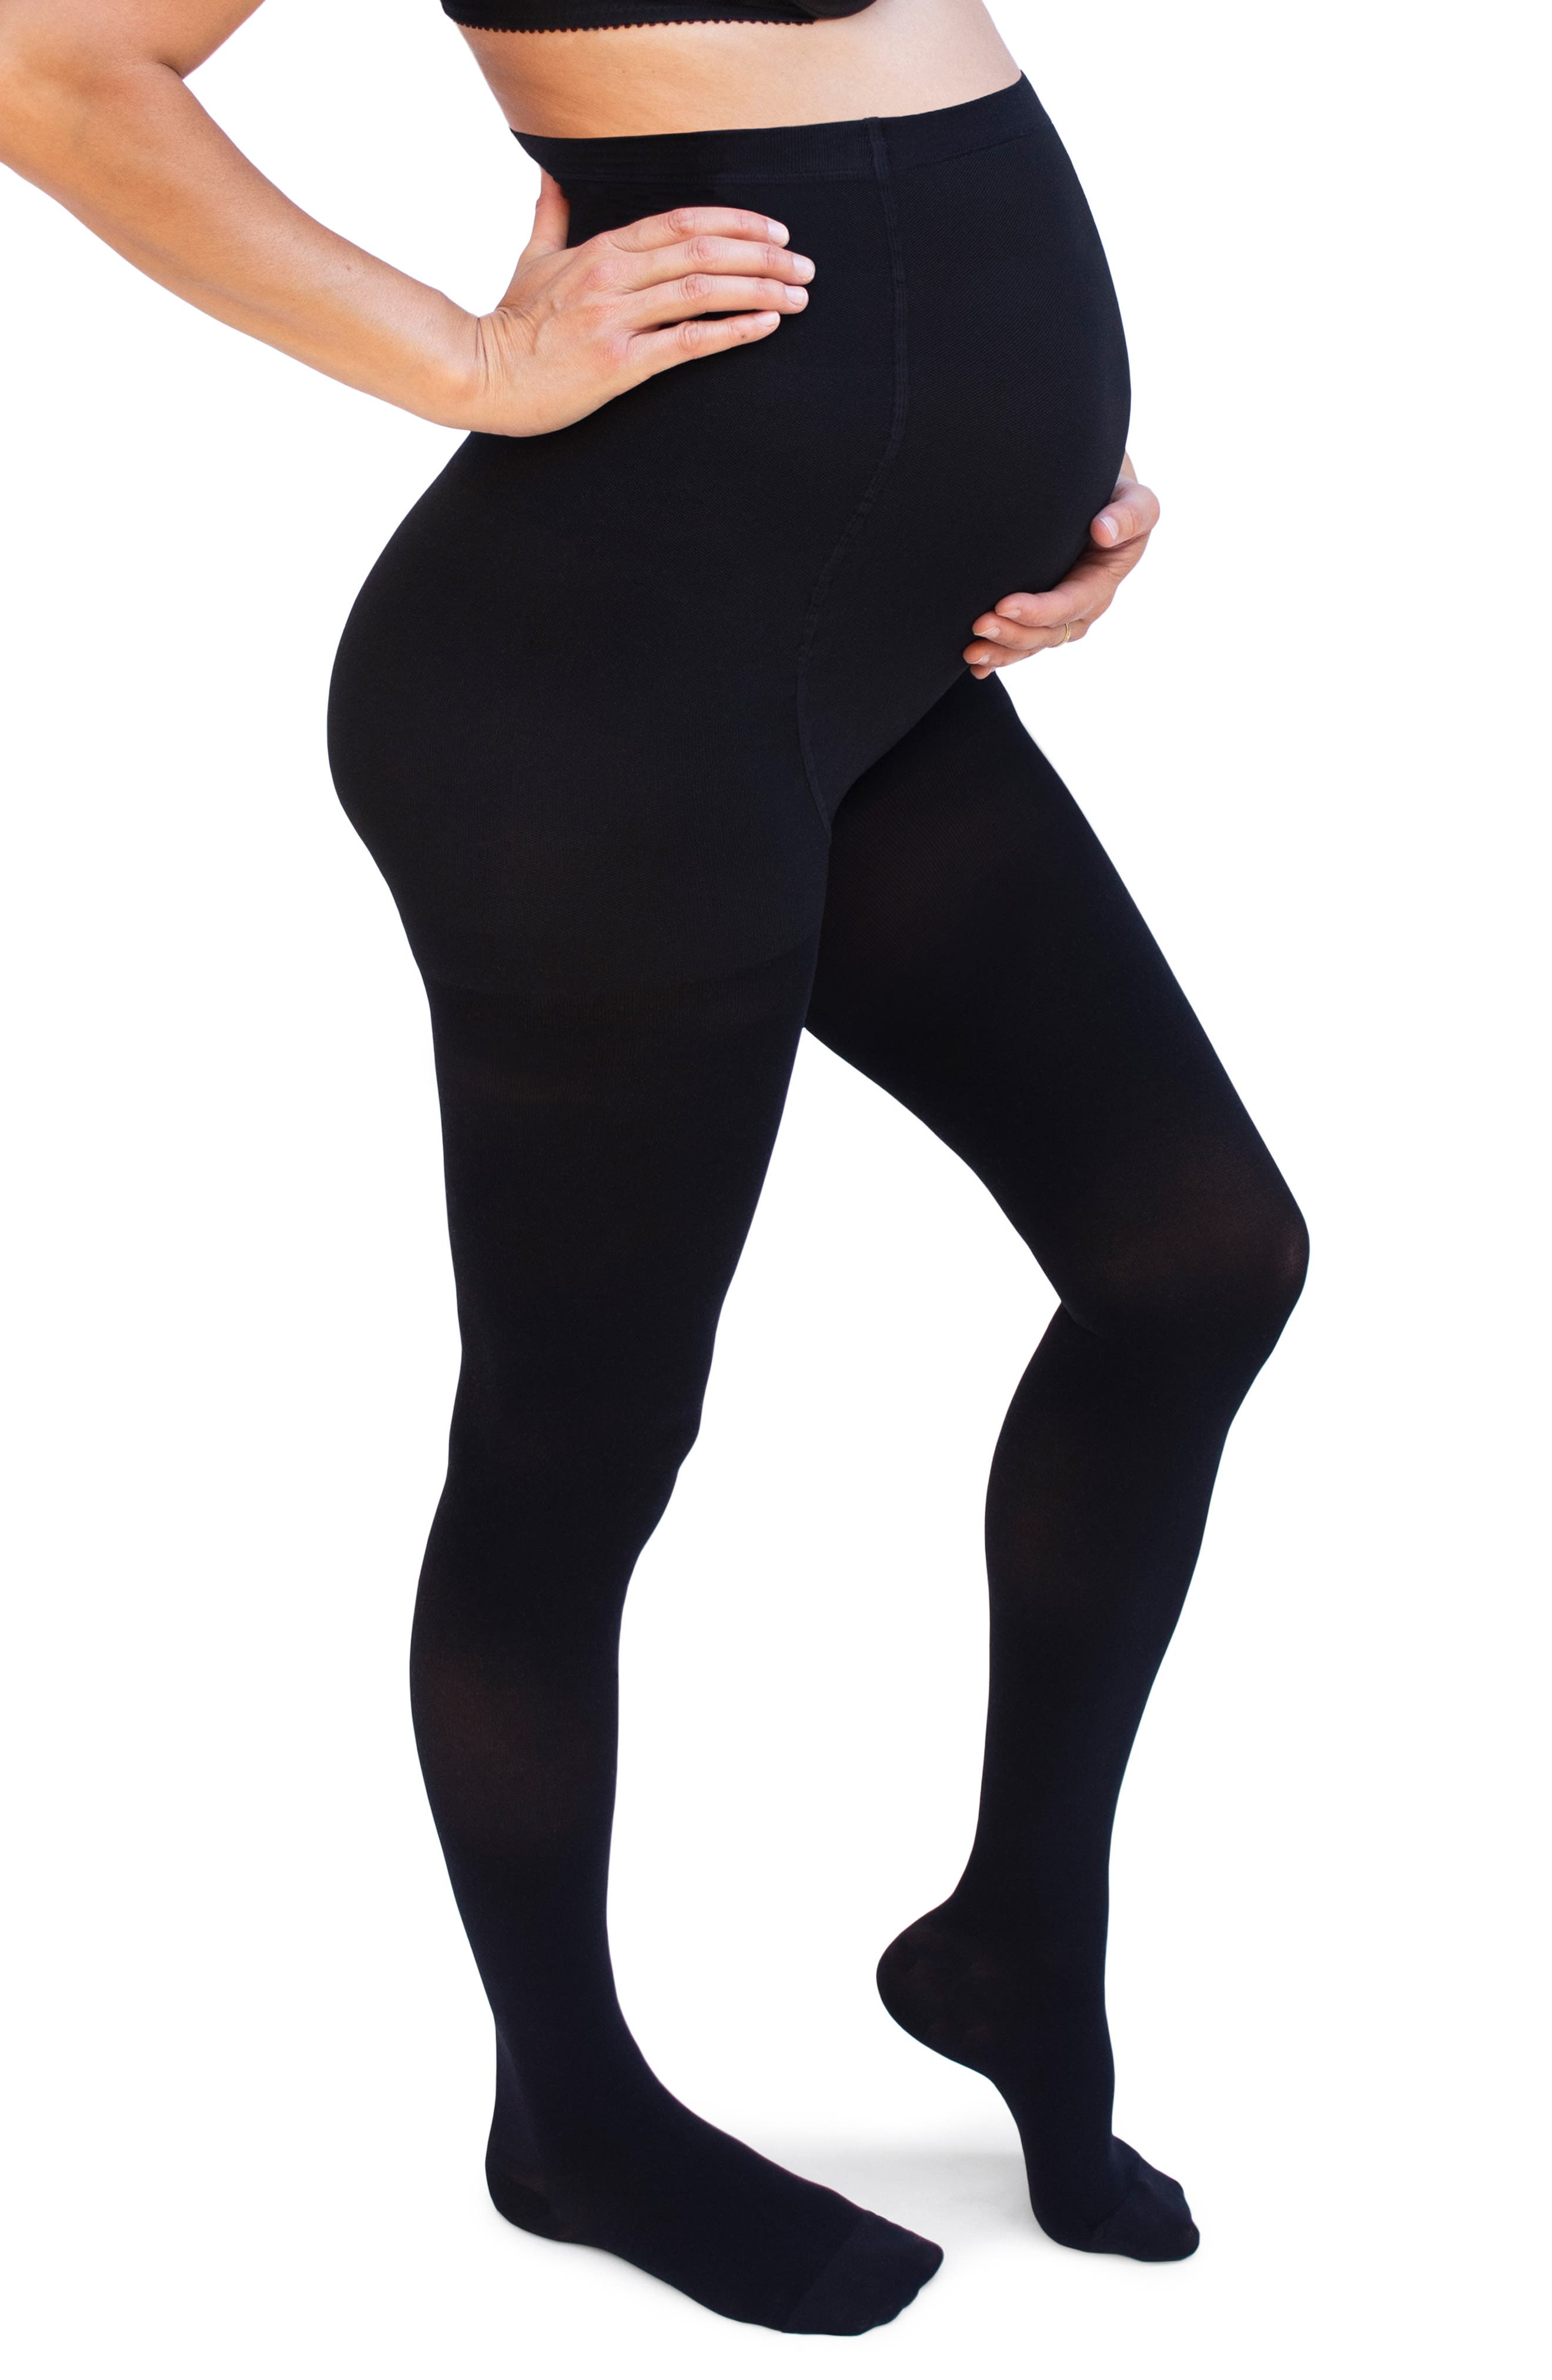 Women's Belly Bandit Maternity Compression Tights